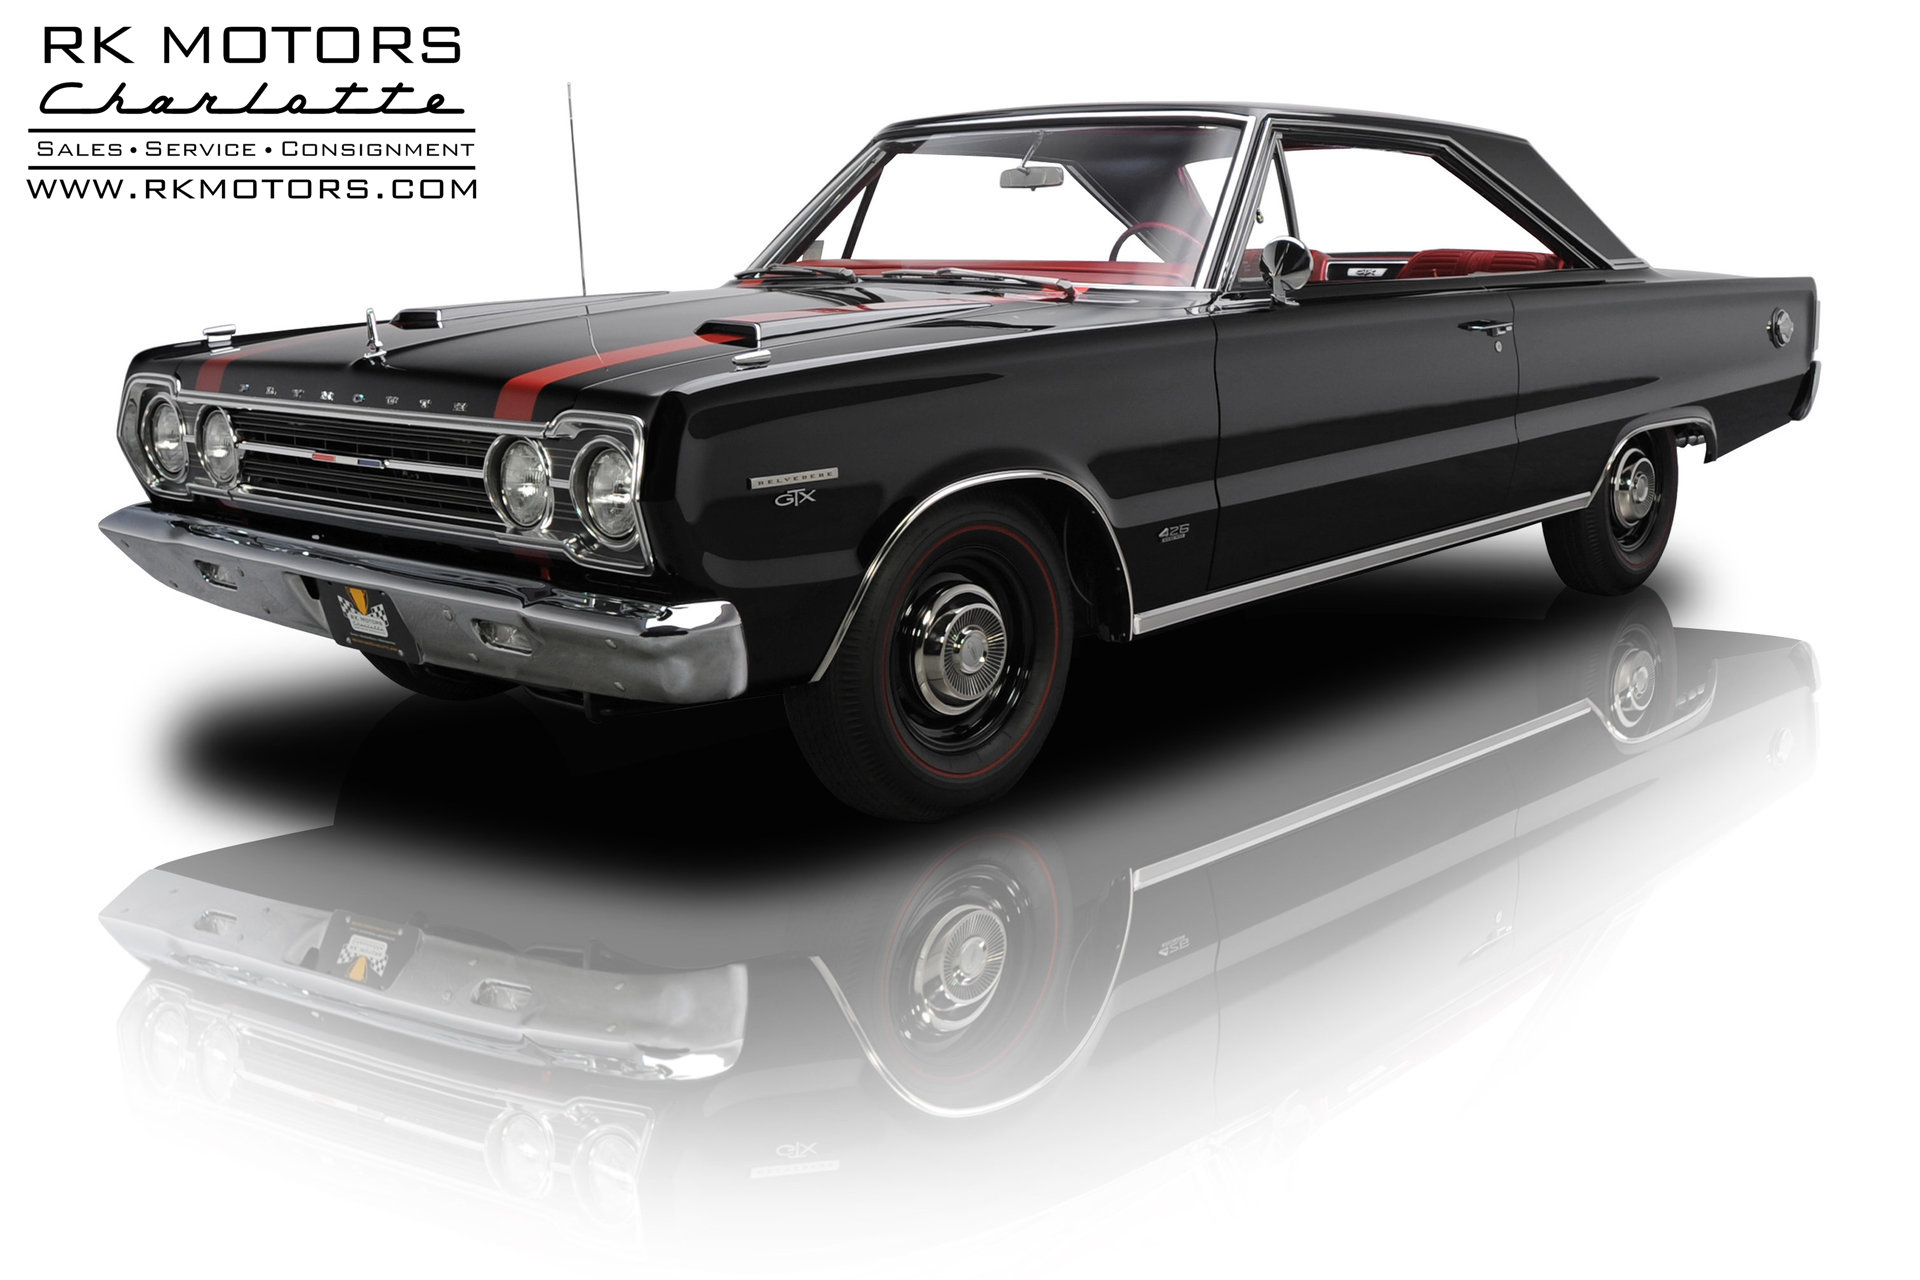 Wiring Harness 1967 Plymouth Gtx Worksheet And Diagram Belvedere 133298 Rk Motors Classic Cars For Sale Rh Rkmotors Com 1966 1971